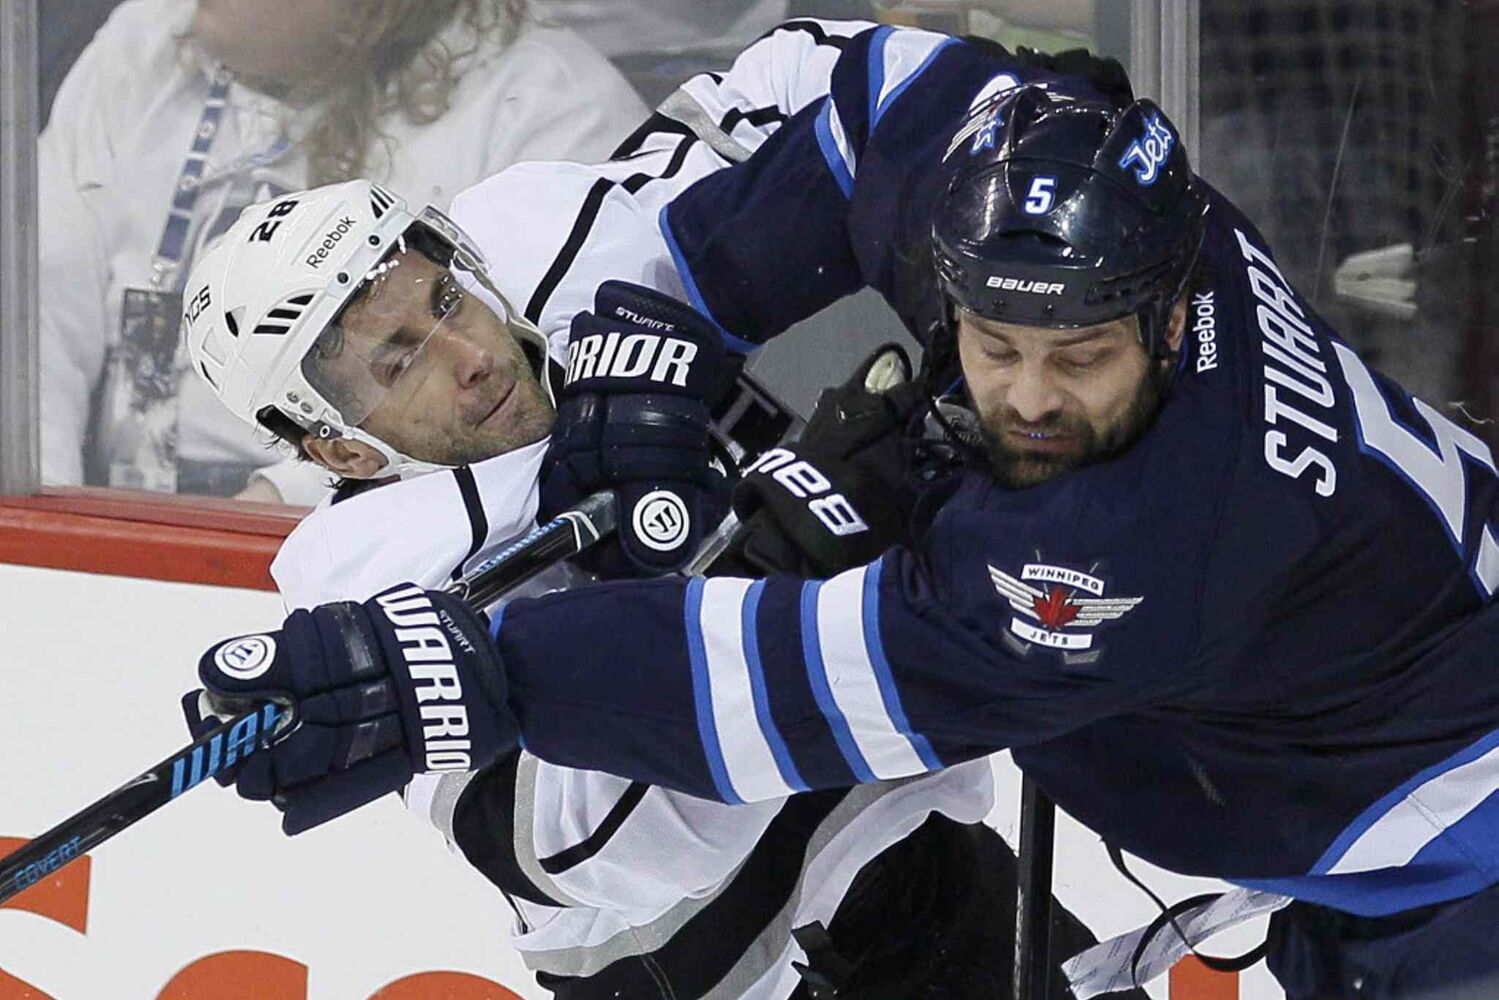 Winnipeg Jets' Mark Stuart (5) checks Los Angeles Kings' Jarret Stoll (28) during the first period in Winnipeg on Thursday. (John Woods / The Canadian Press)